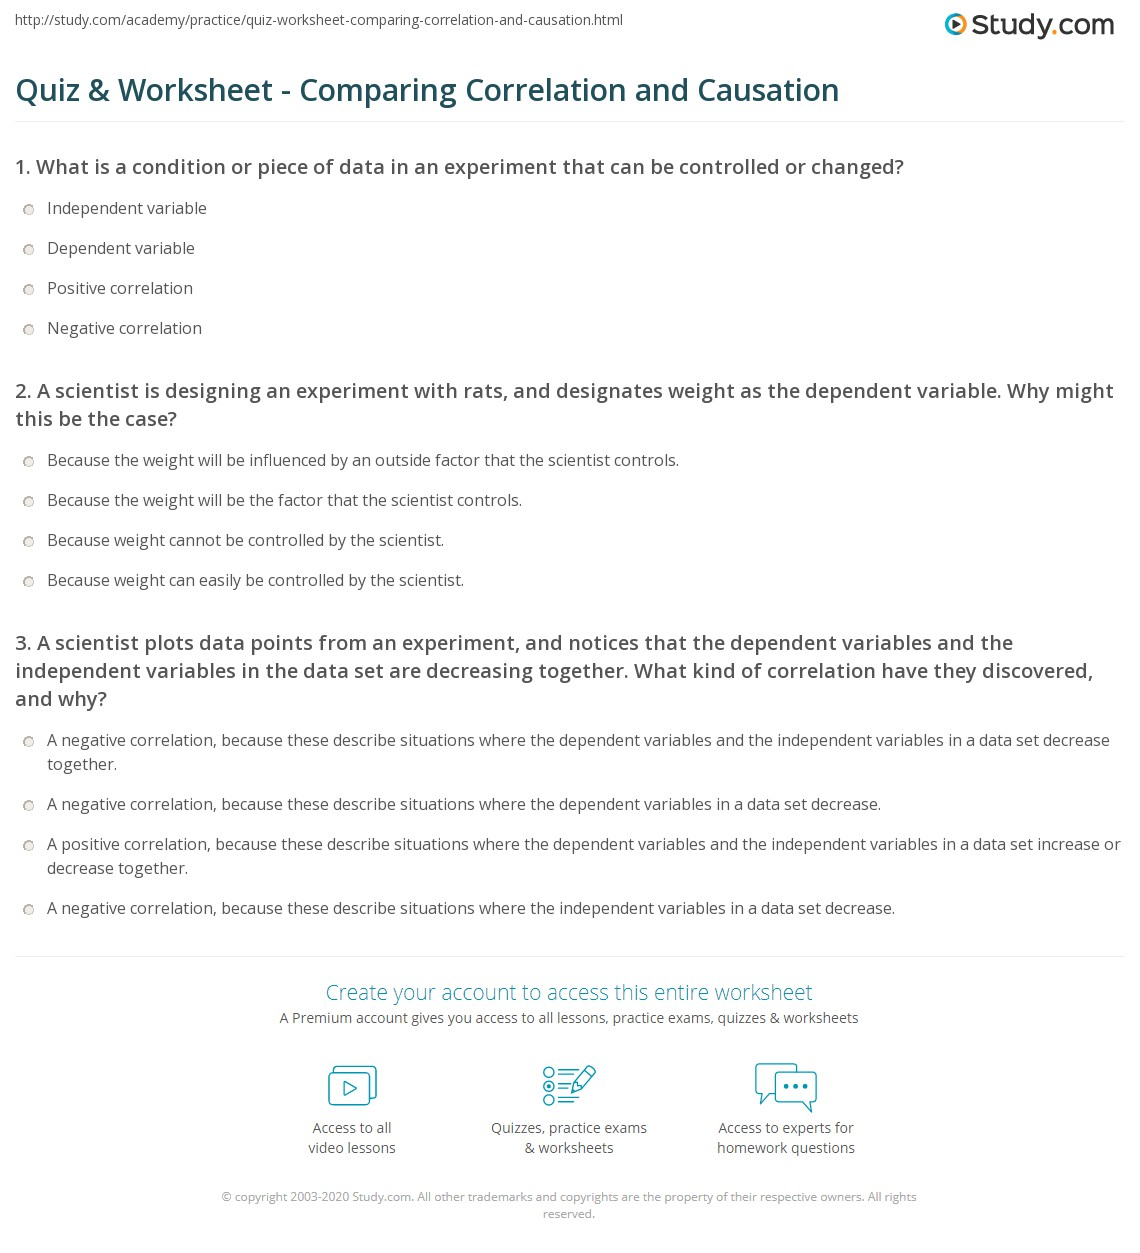 Aldiablosus  Inspiring Quiz Amp Worksheet  Comparing Correlation And Causation  Studycom With Lovely Print Correlation Vs Causation Differences Amp Definition Worksheet With Extraordinary Superlative Adjective Worksheets Also Precise Writing Worksheets In Addition Halloween Spelling Worksheets And States Of Matter Worksheets For Kids As Well As Linear Equation With One Variable Worksheet Additionally Ks Numeracy Worksheets From Studycom With Aldiablosus  Lovely Quiz Amp Worksheet  Comparing Correlation And Causation  Studycom With Extraordinary Print Correlation Vs Causation Differences Amp Definition Worksheet And Inspiring Superlative Adjective Worksheets Also Precise Writing Worksheets In Addition Halloween Spelling Worksheets From Studycom